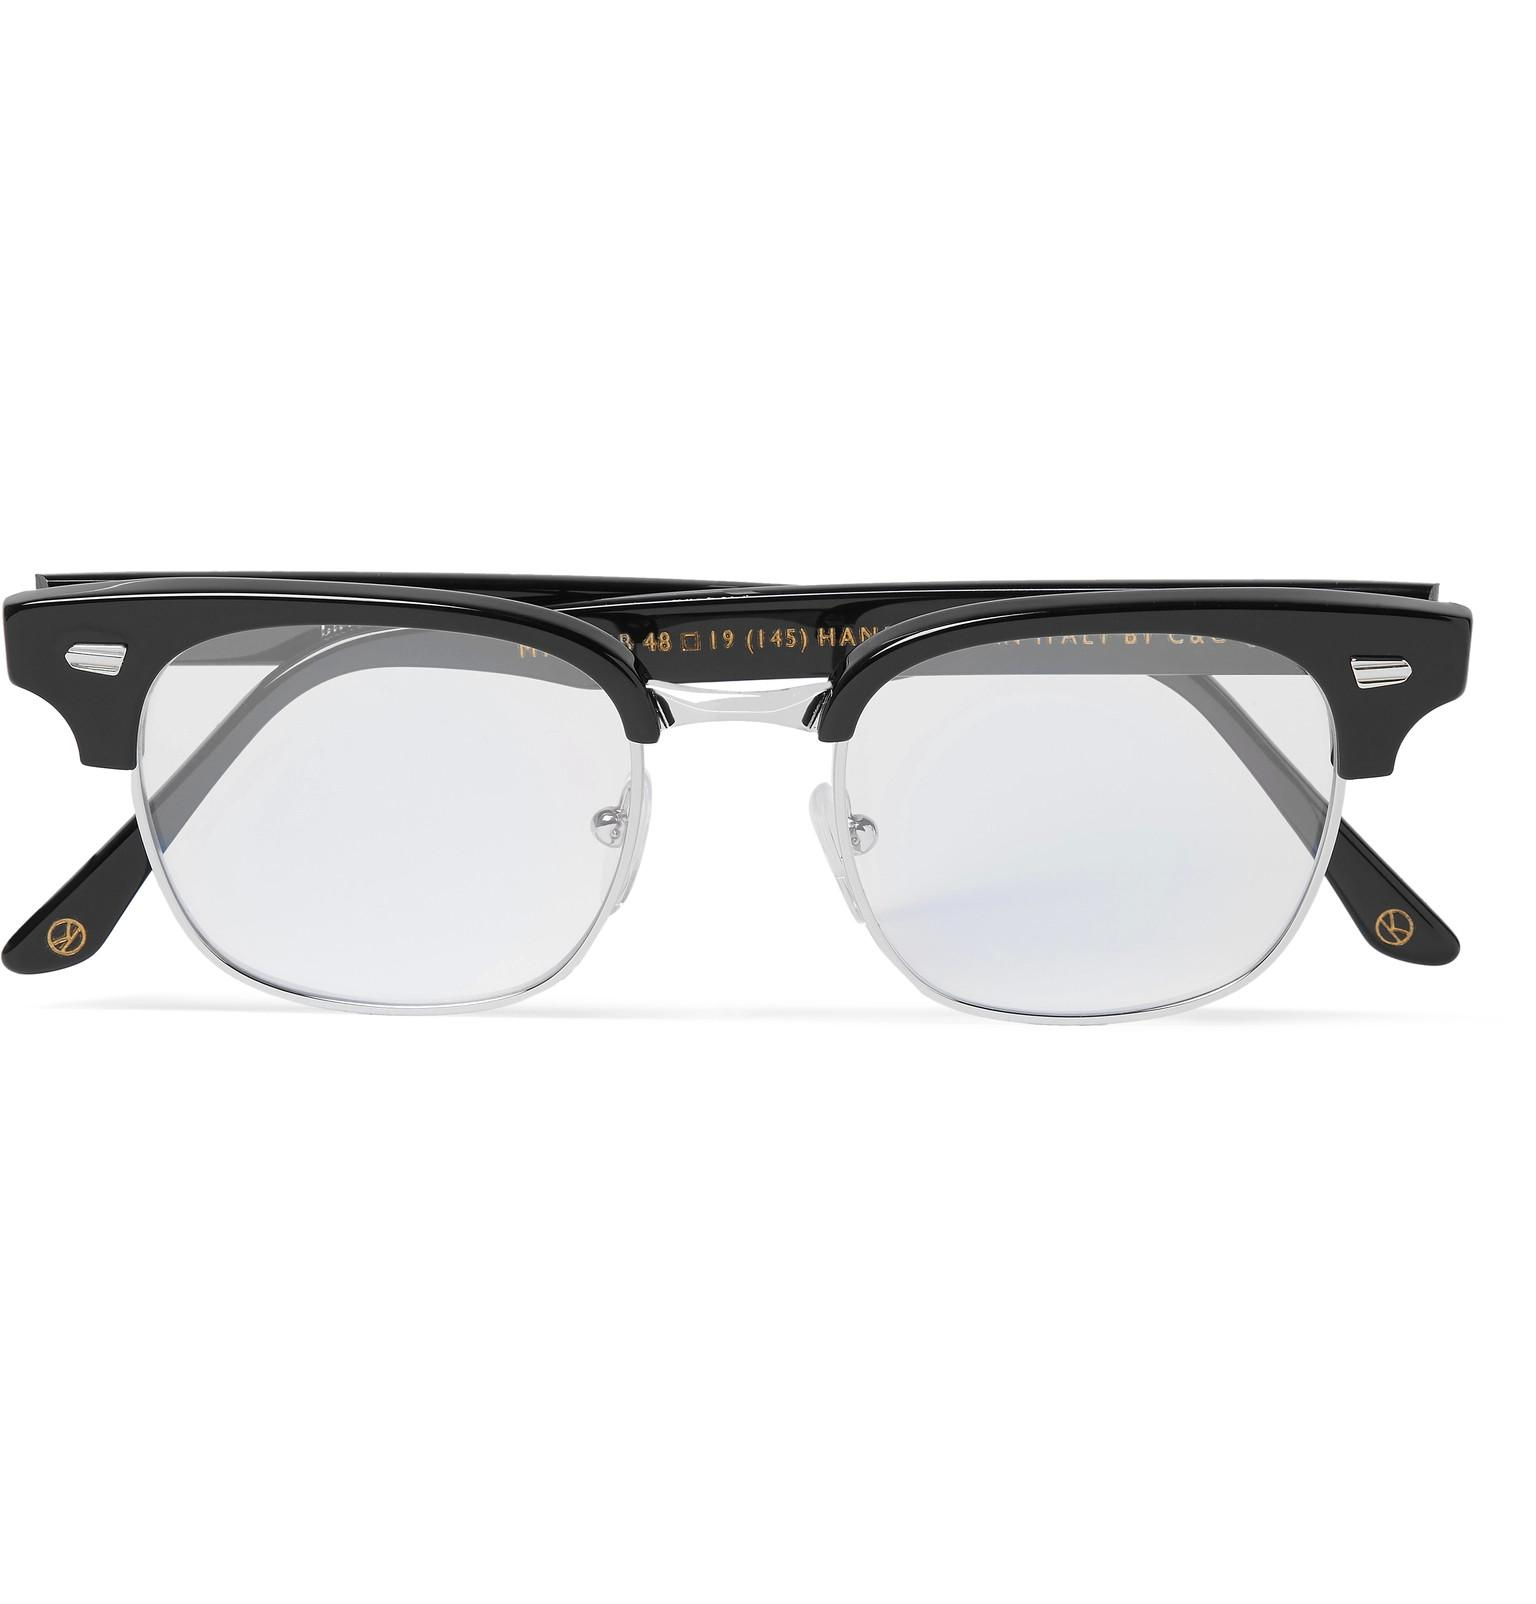 a095b78c0e Lyst - Kingsman Cutler And Gross Merlin s Square-frame Acetate And ...